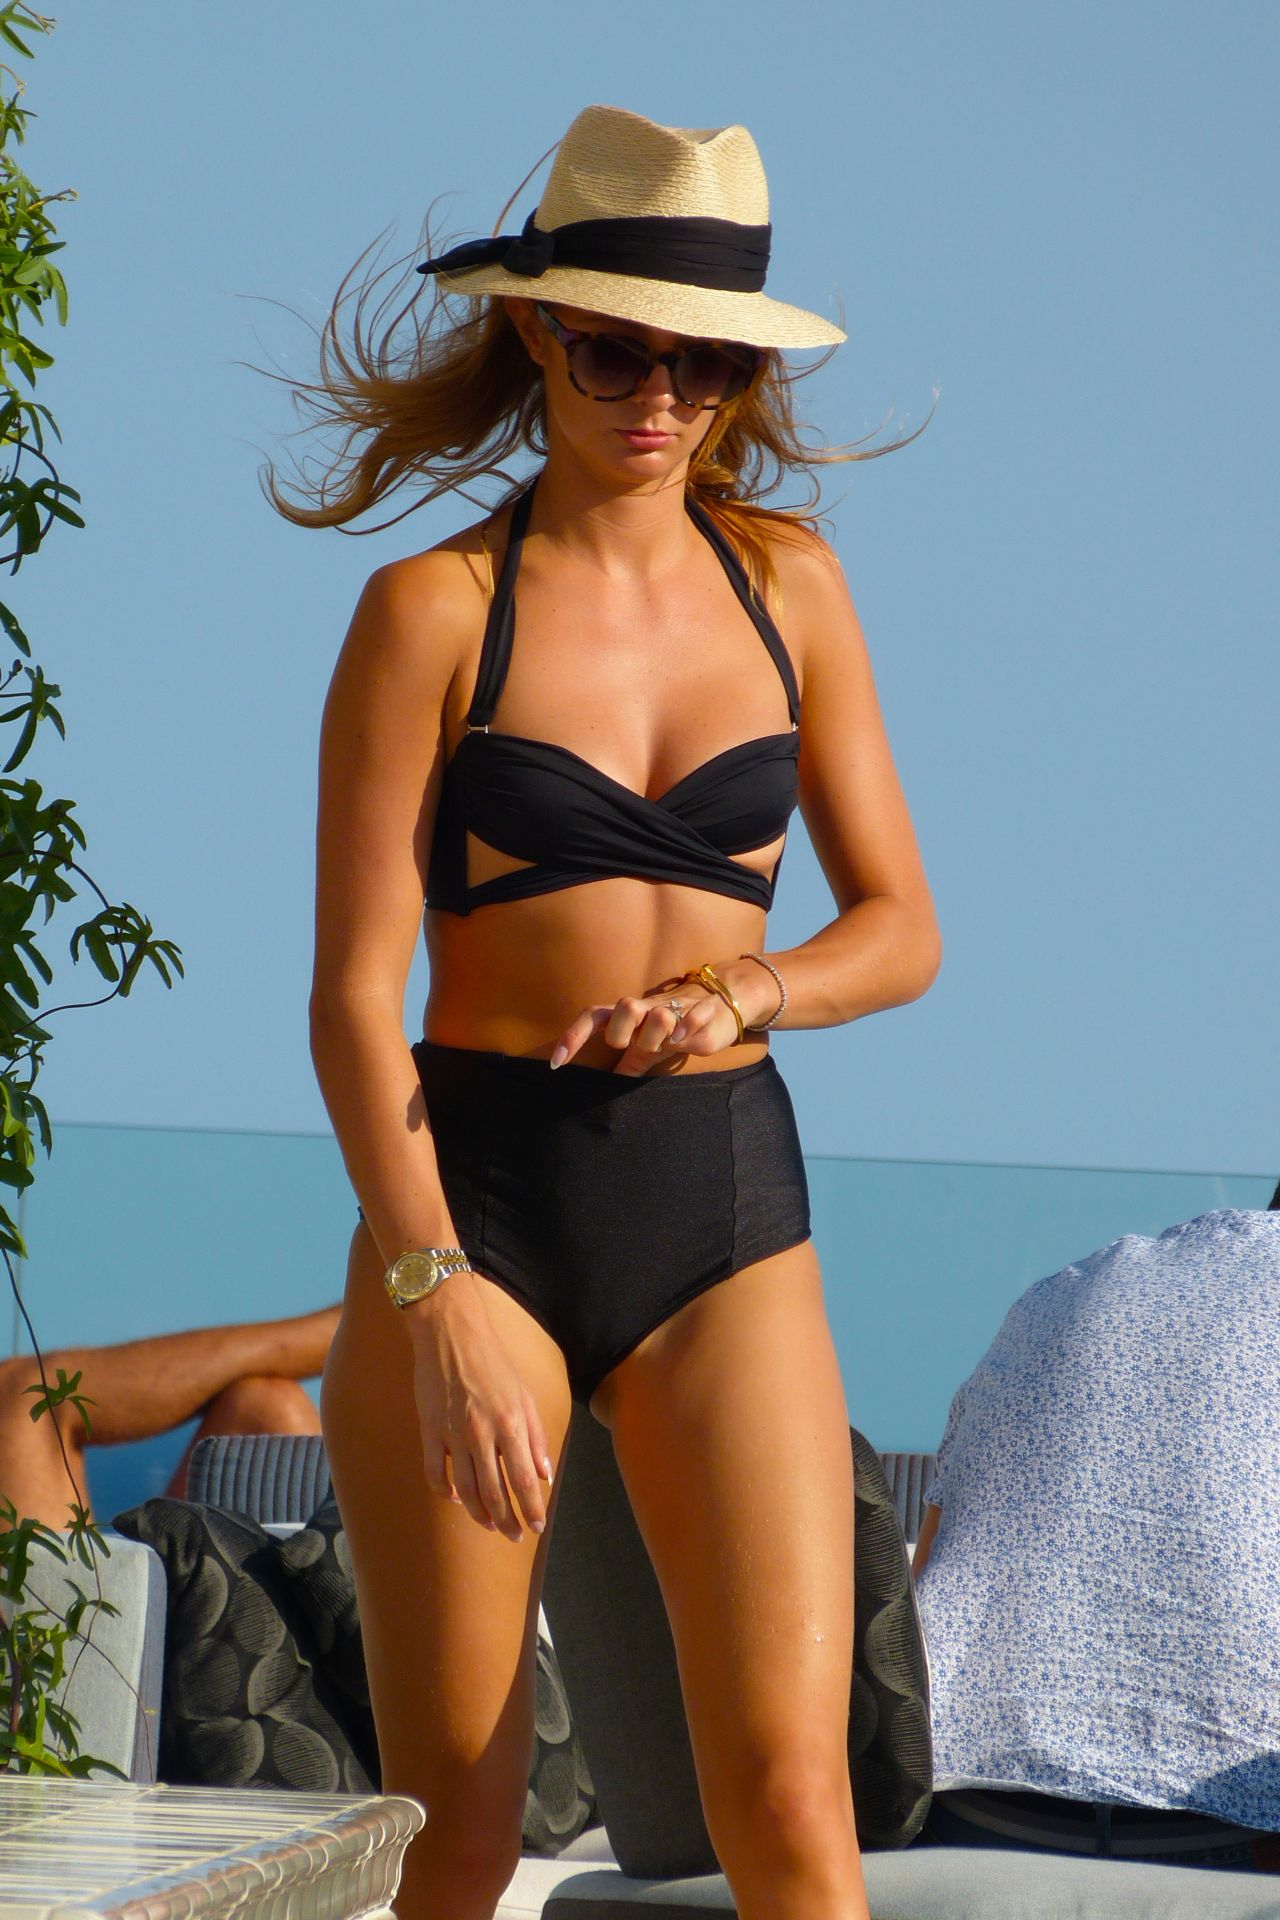 Millie Mackintosh Hot in Bikini- Enjoying the Sun in Ibiza - August 2014